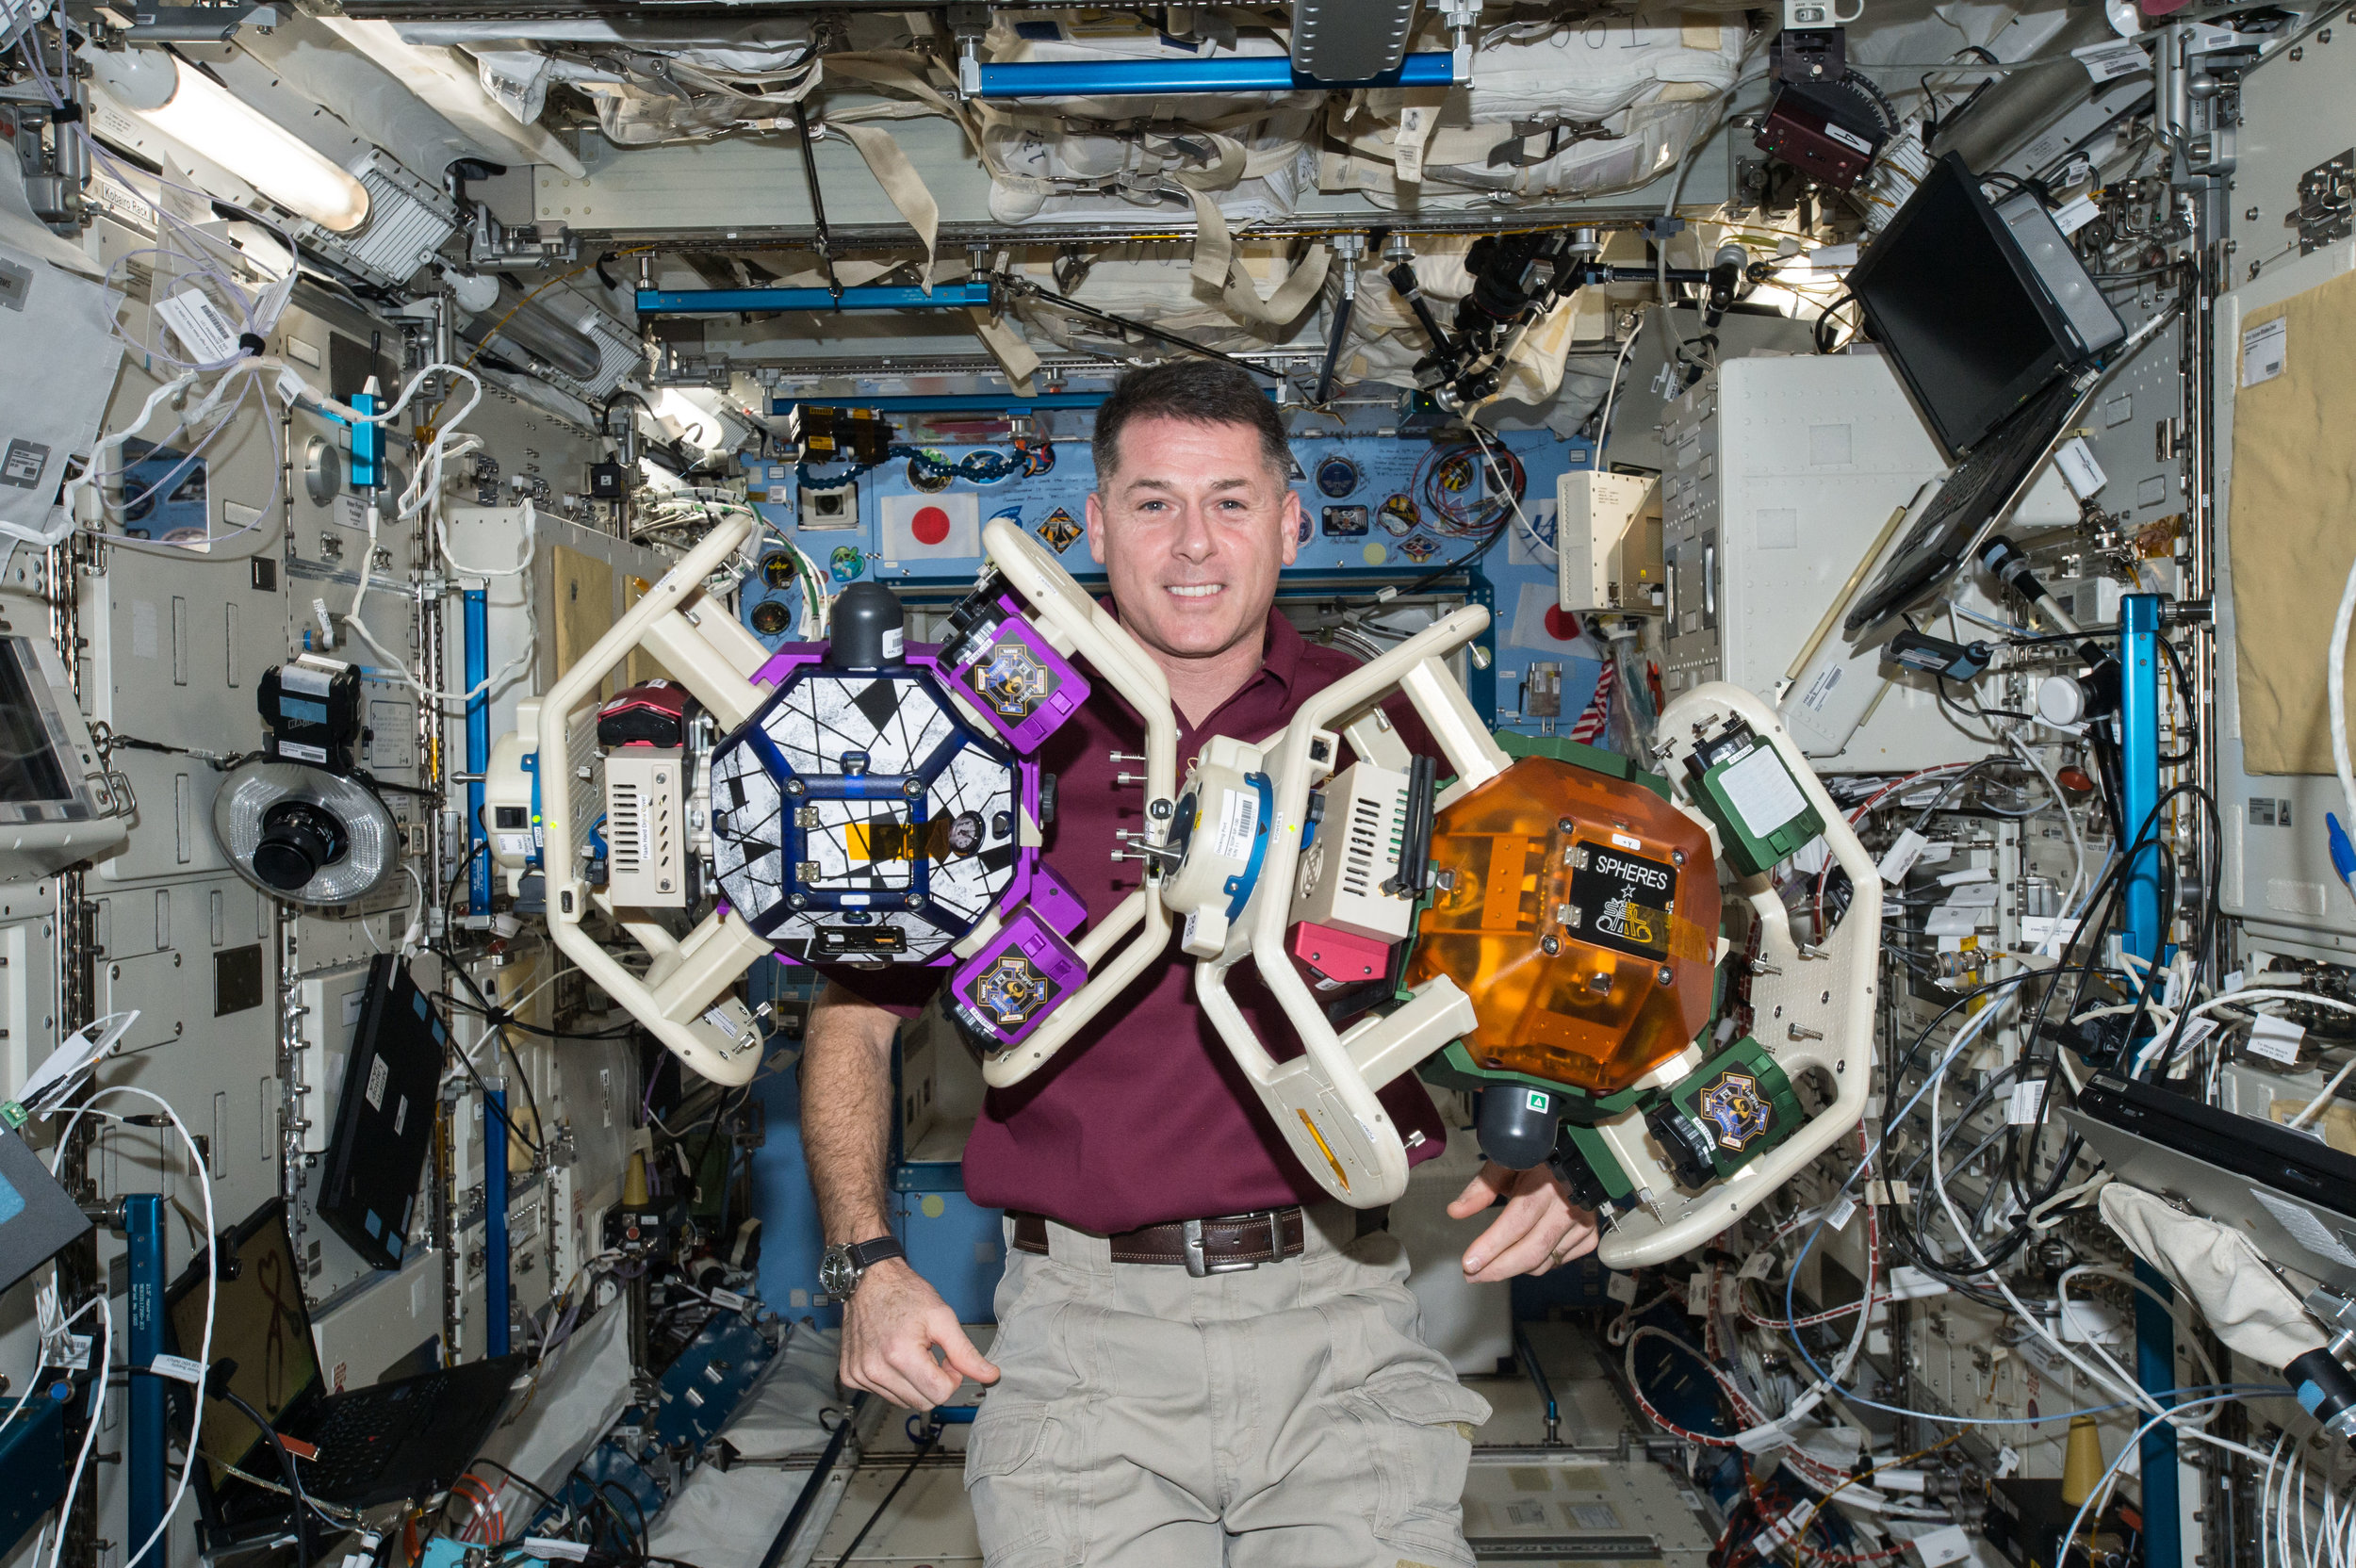 NASA Astronaut Shane Kimbrough floats inside the Destiny module with the SPHERES experiment aboard the ISS. Photo credit: NASA